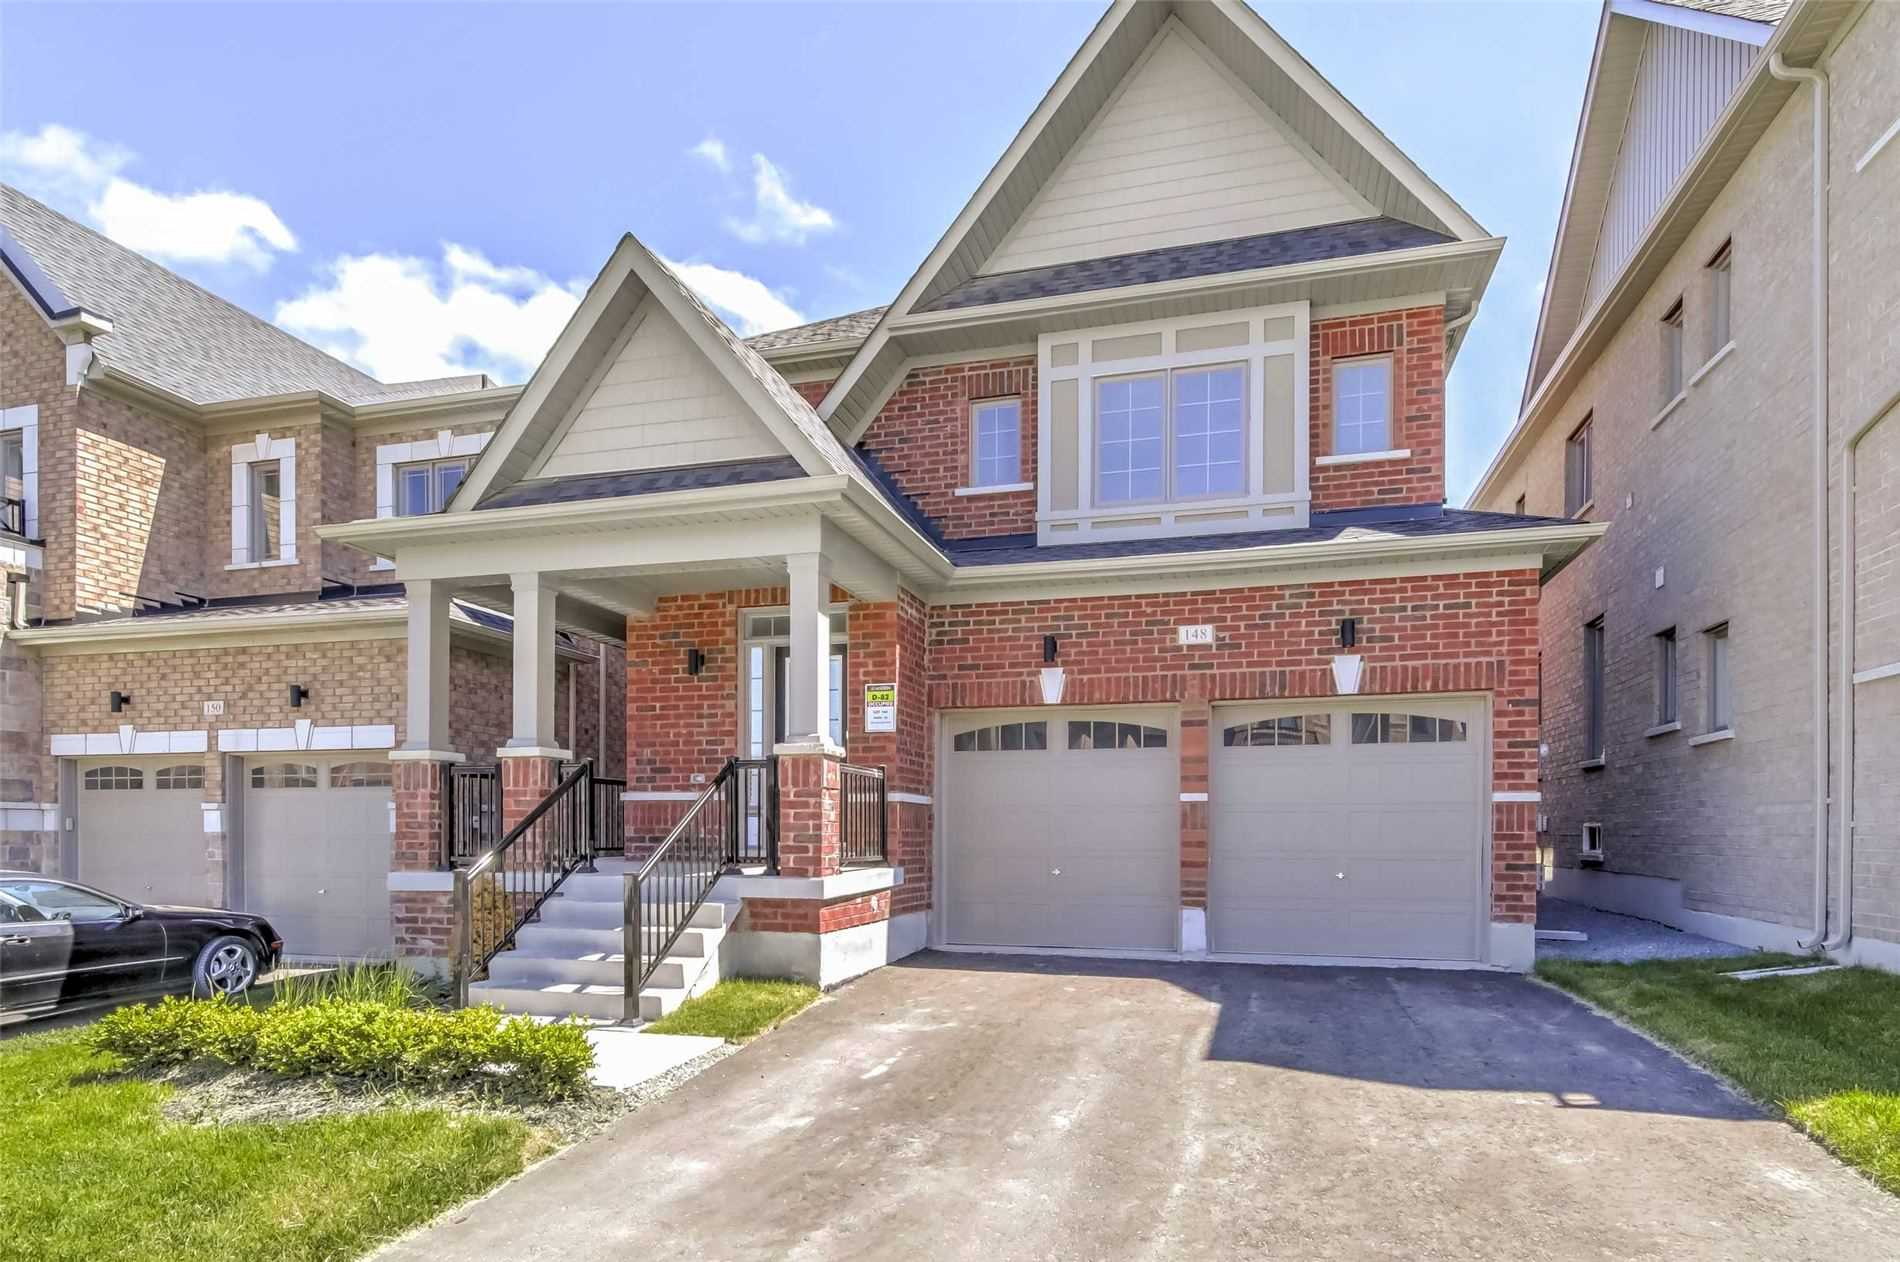 Detached house For Lease In East Gwillimbury